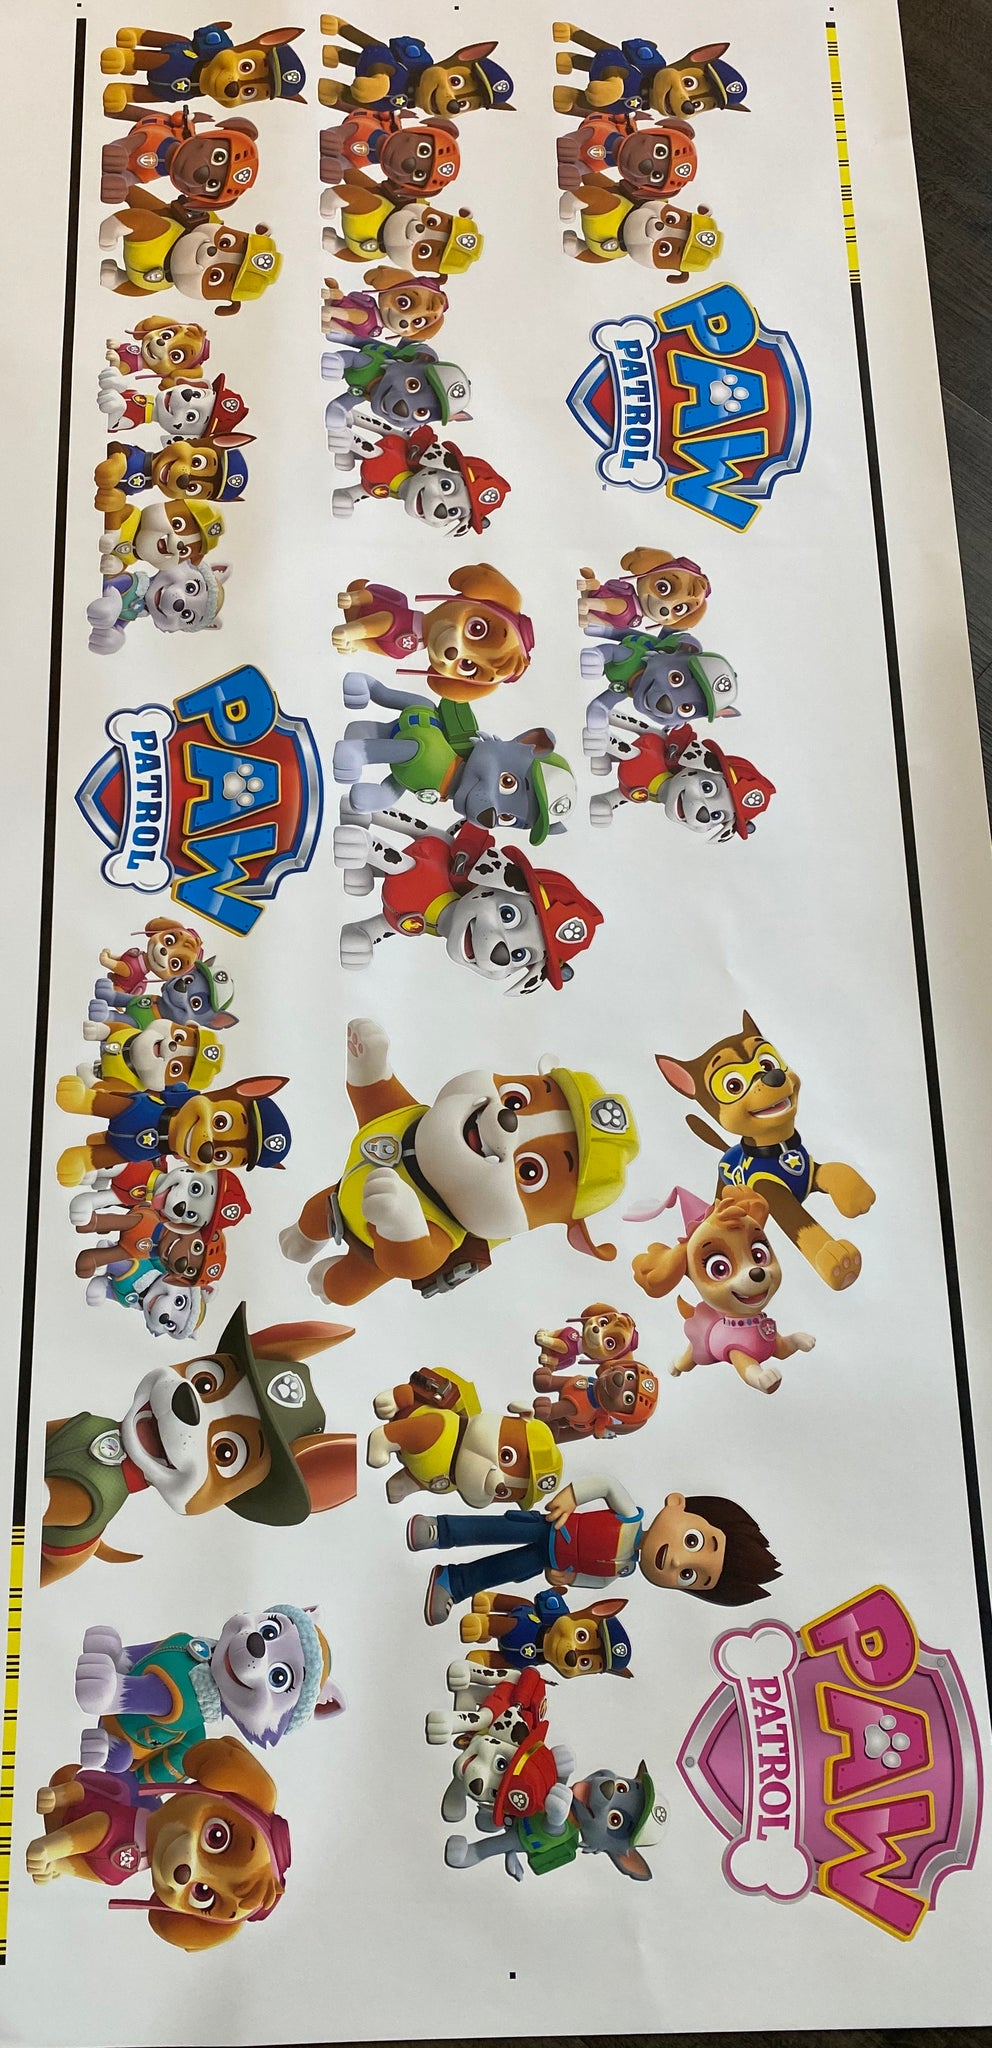 Paw patrol Removable reposition-able wall decal Pack